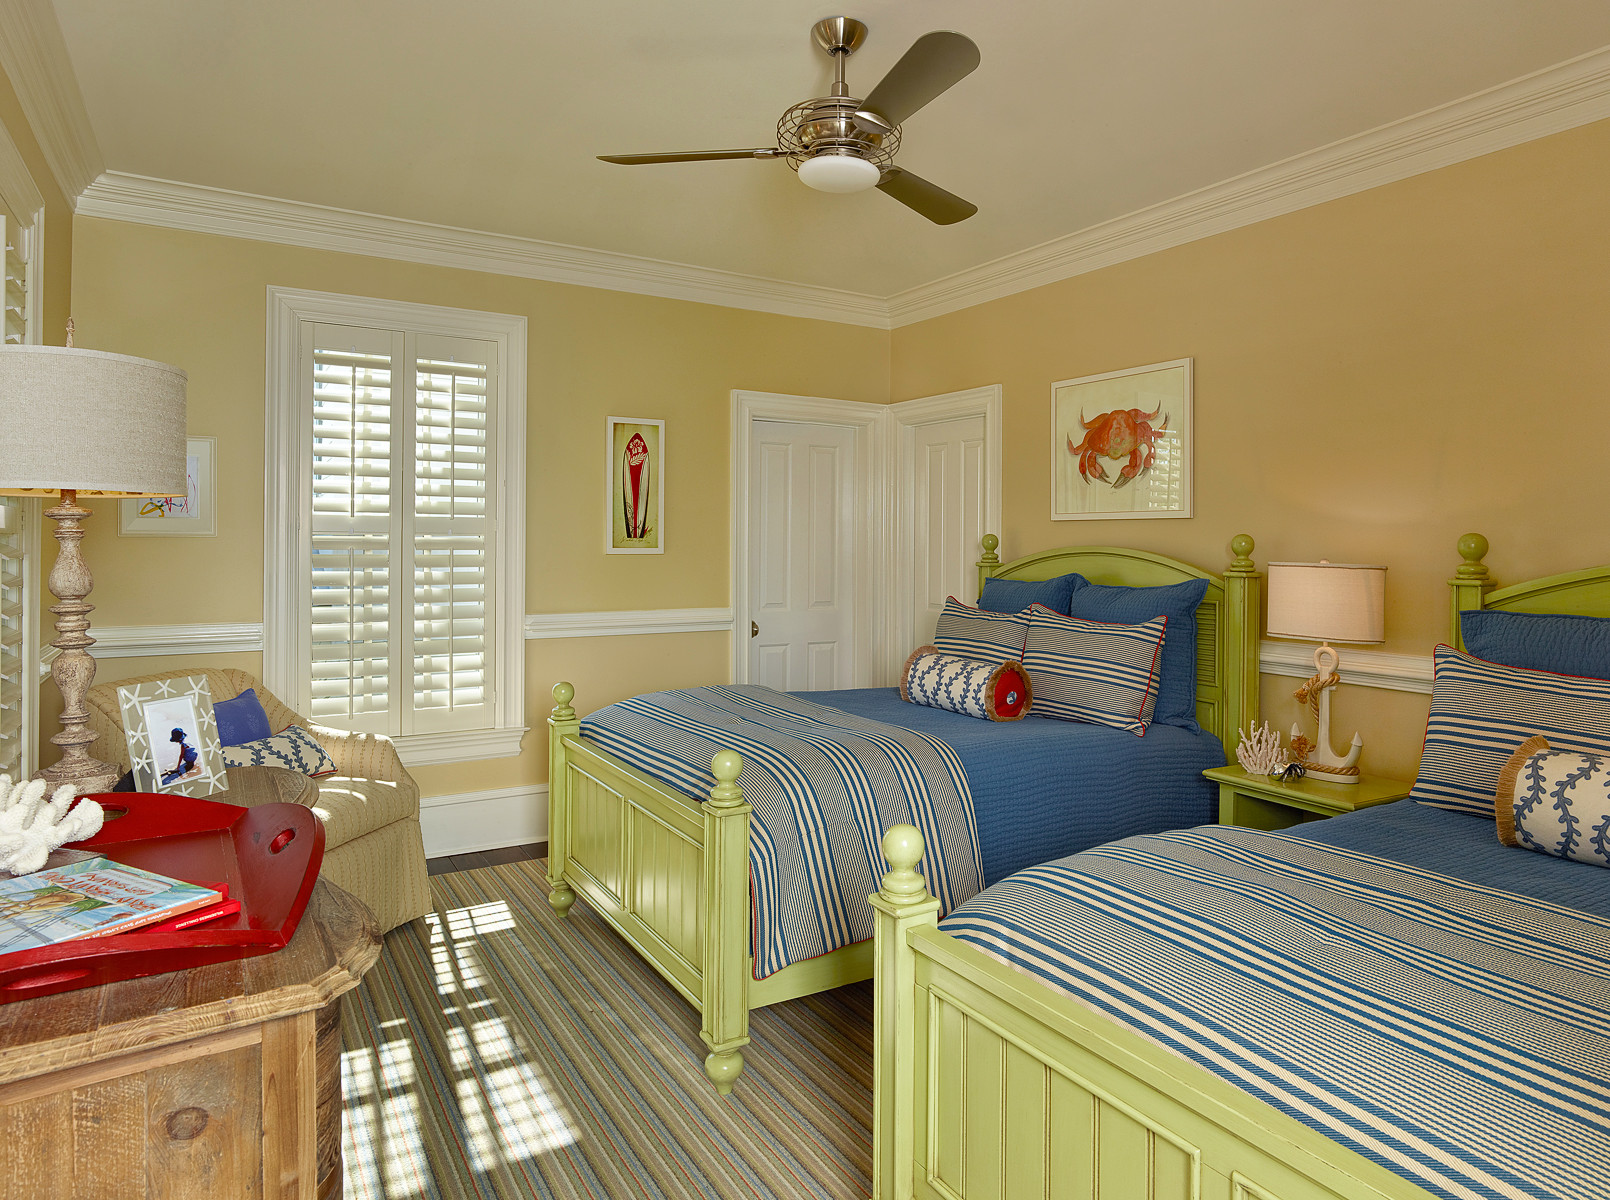 Picture of: Guest Room 2 Full Beds Houzz